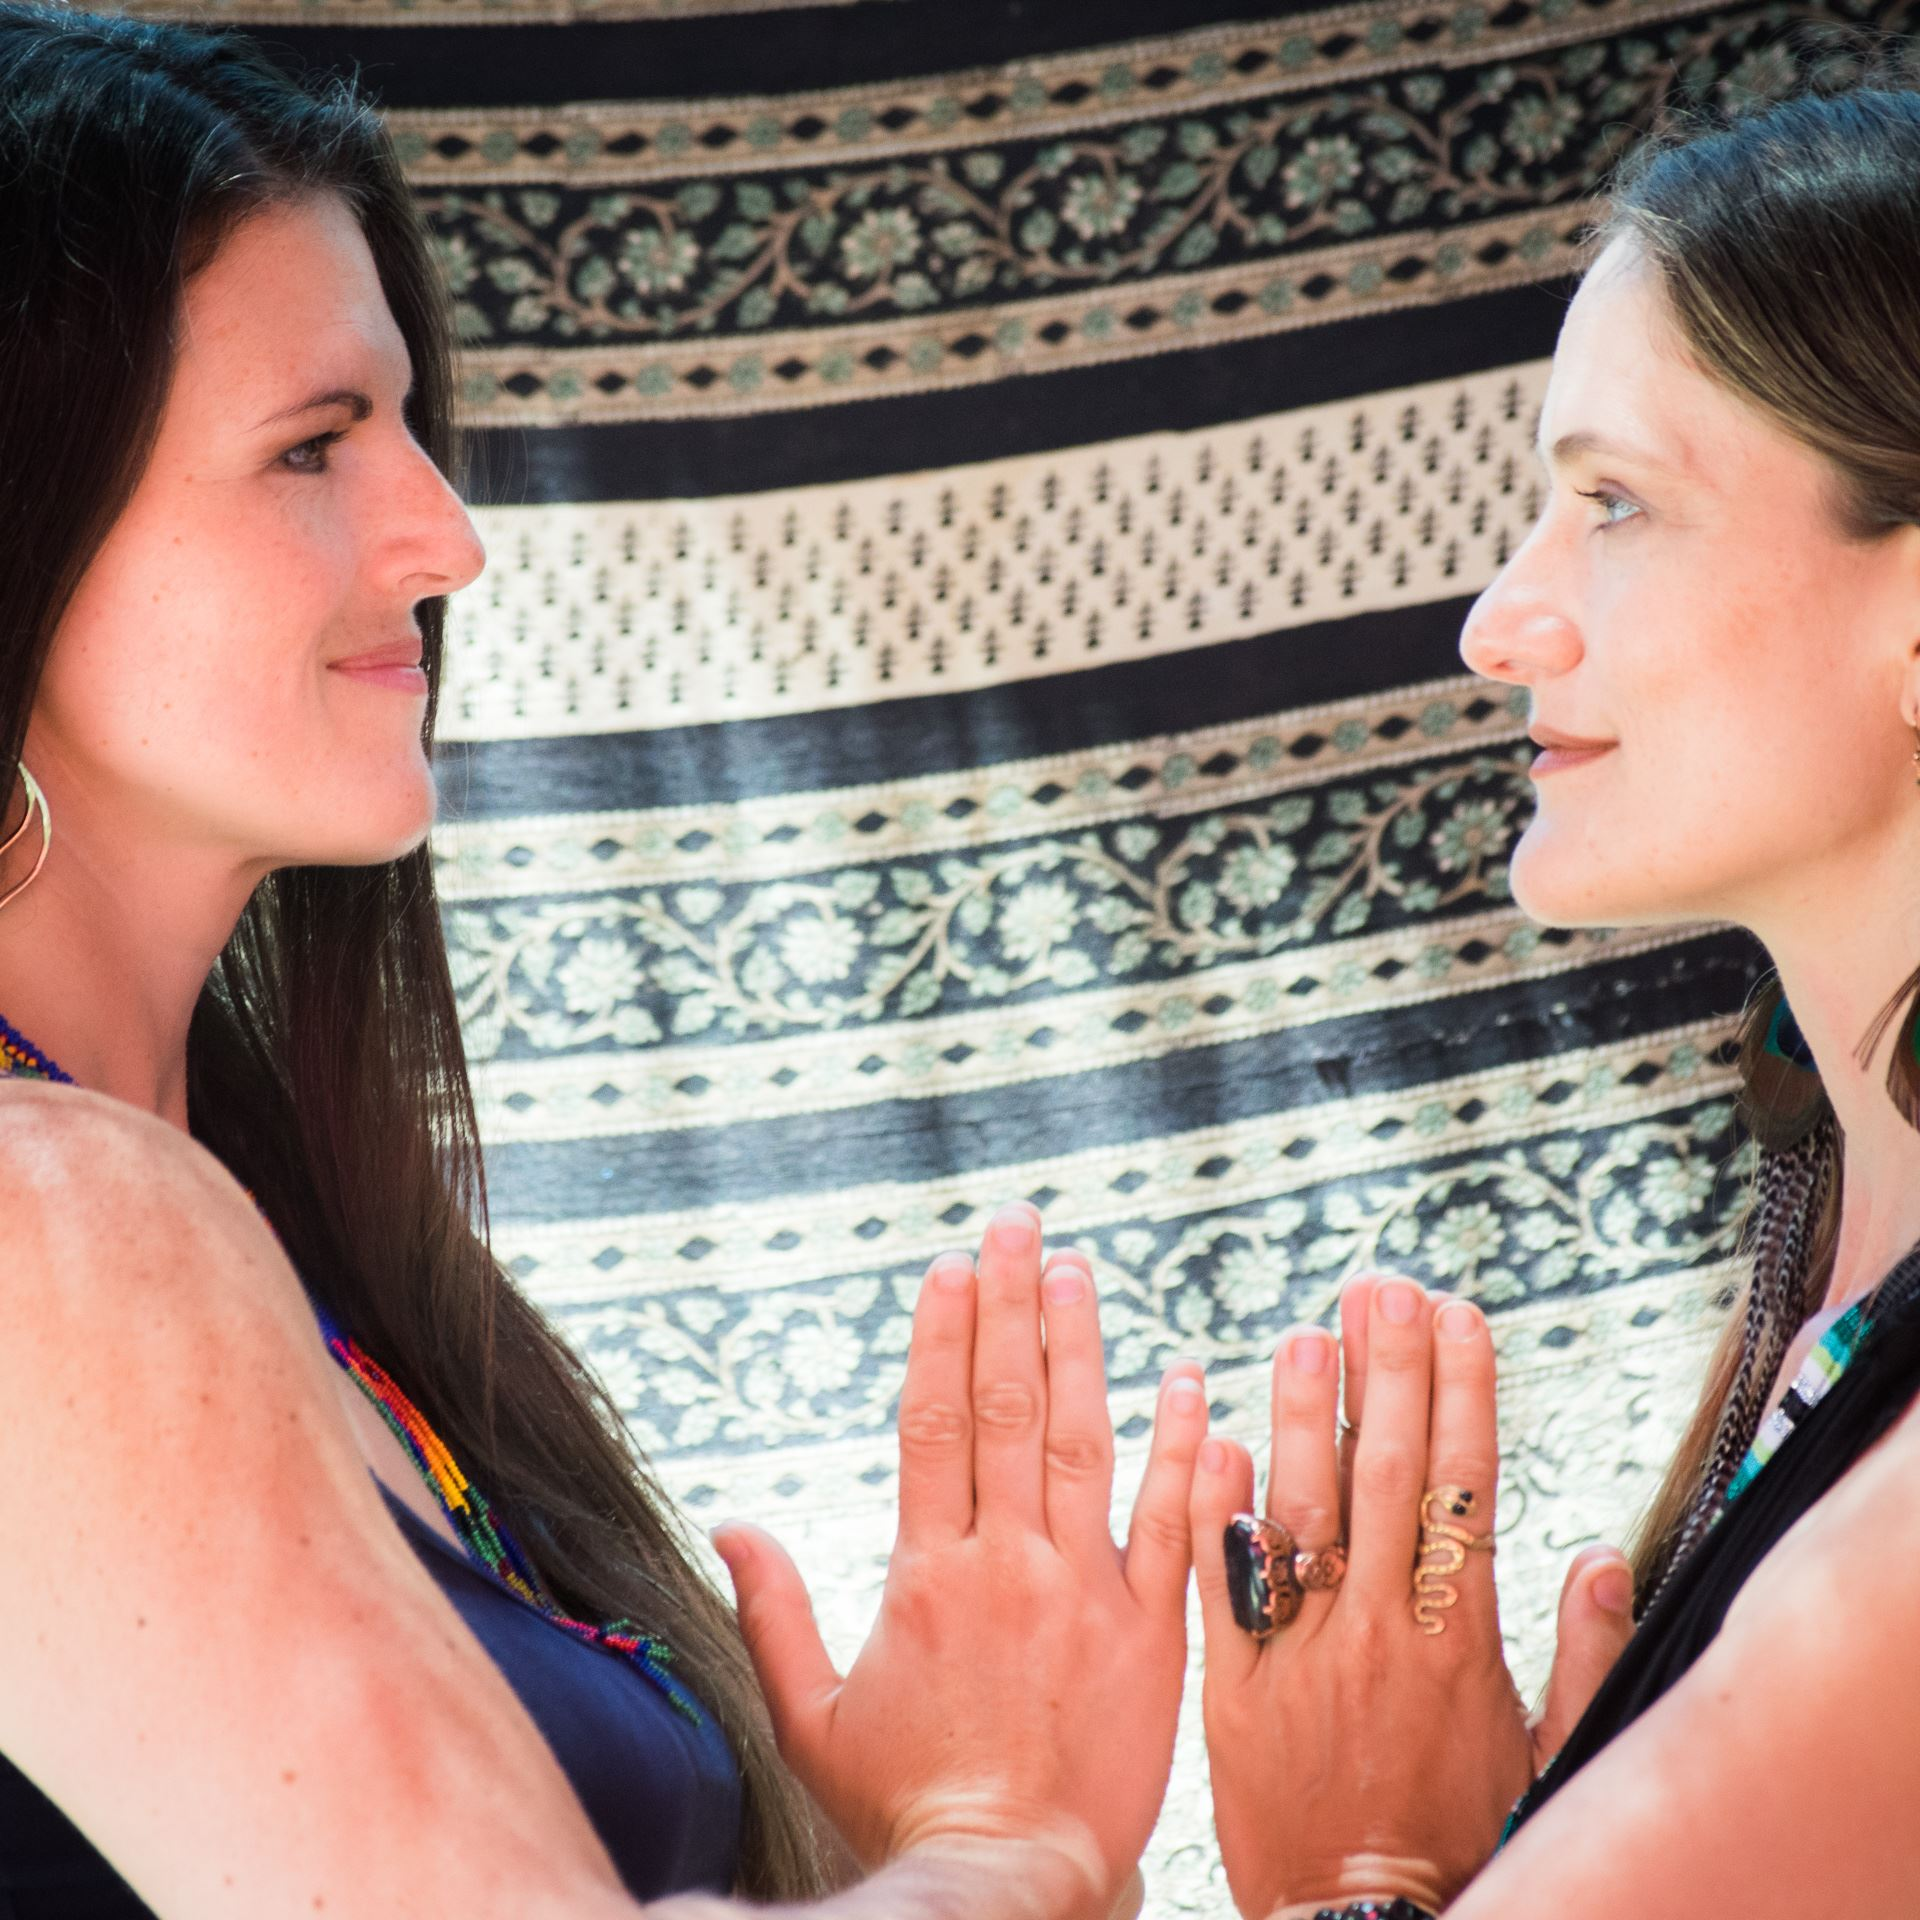 Shaman Sisters Michelle Hawk and Katherine Bird